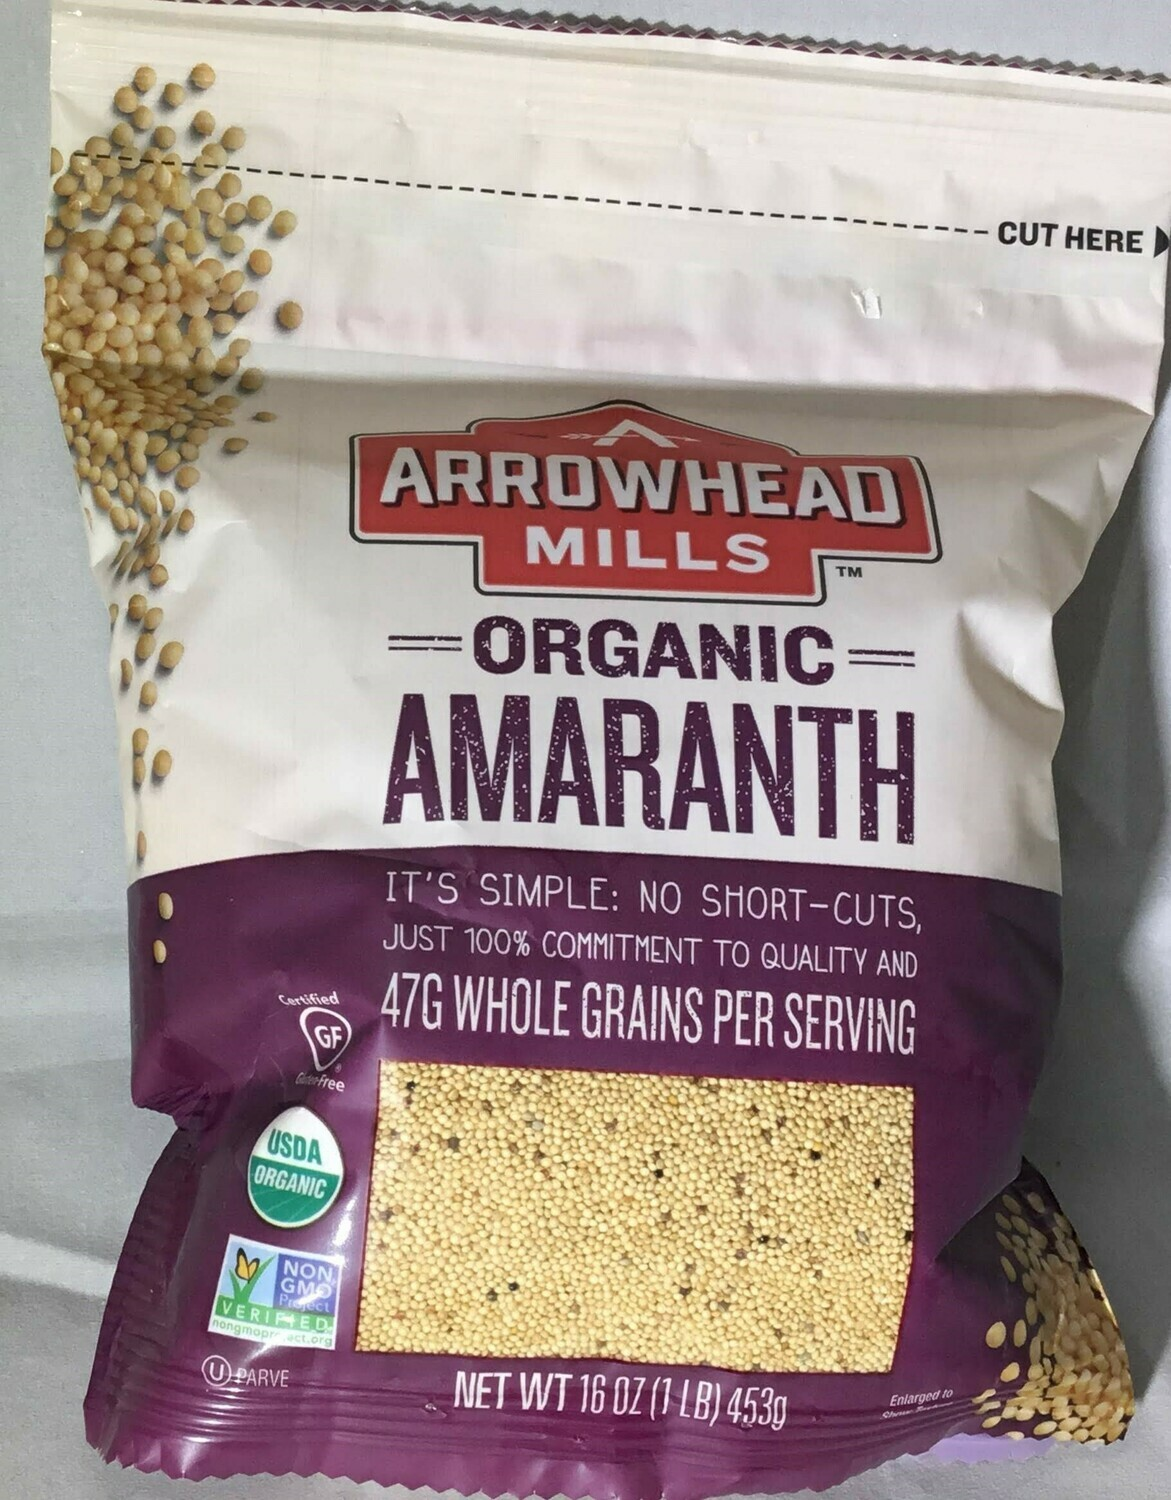 Arrowhead Mills Amaranth- 25% off sale